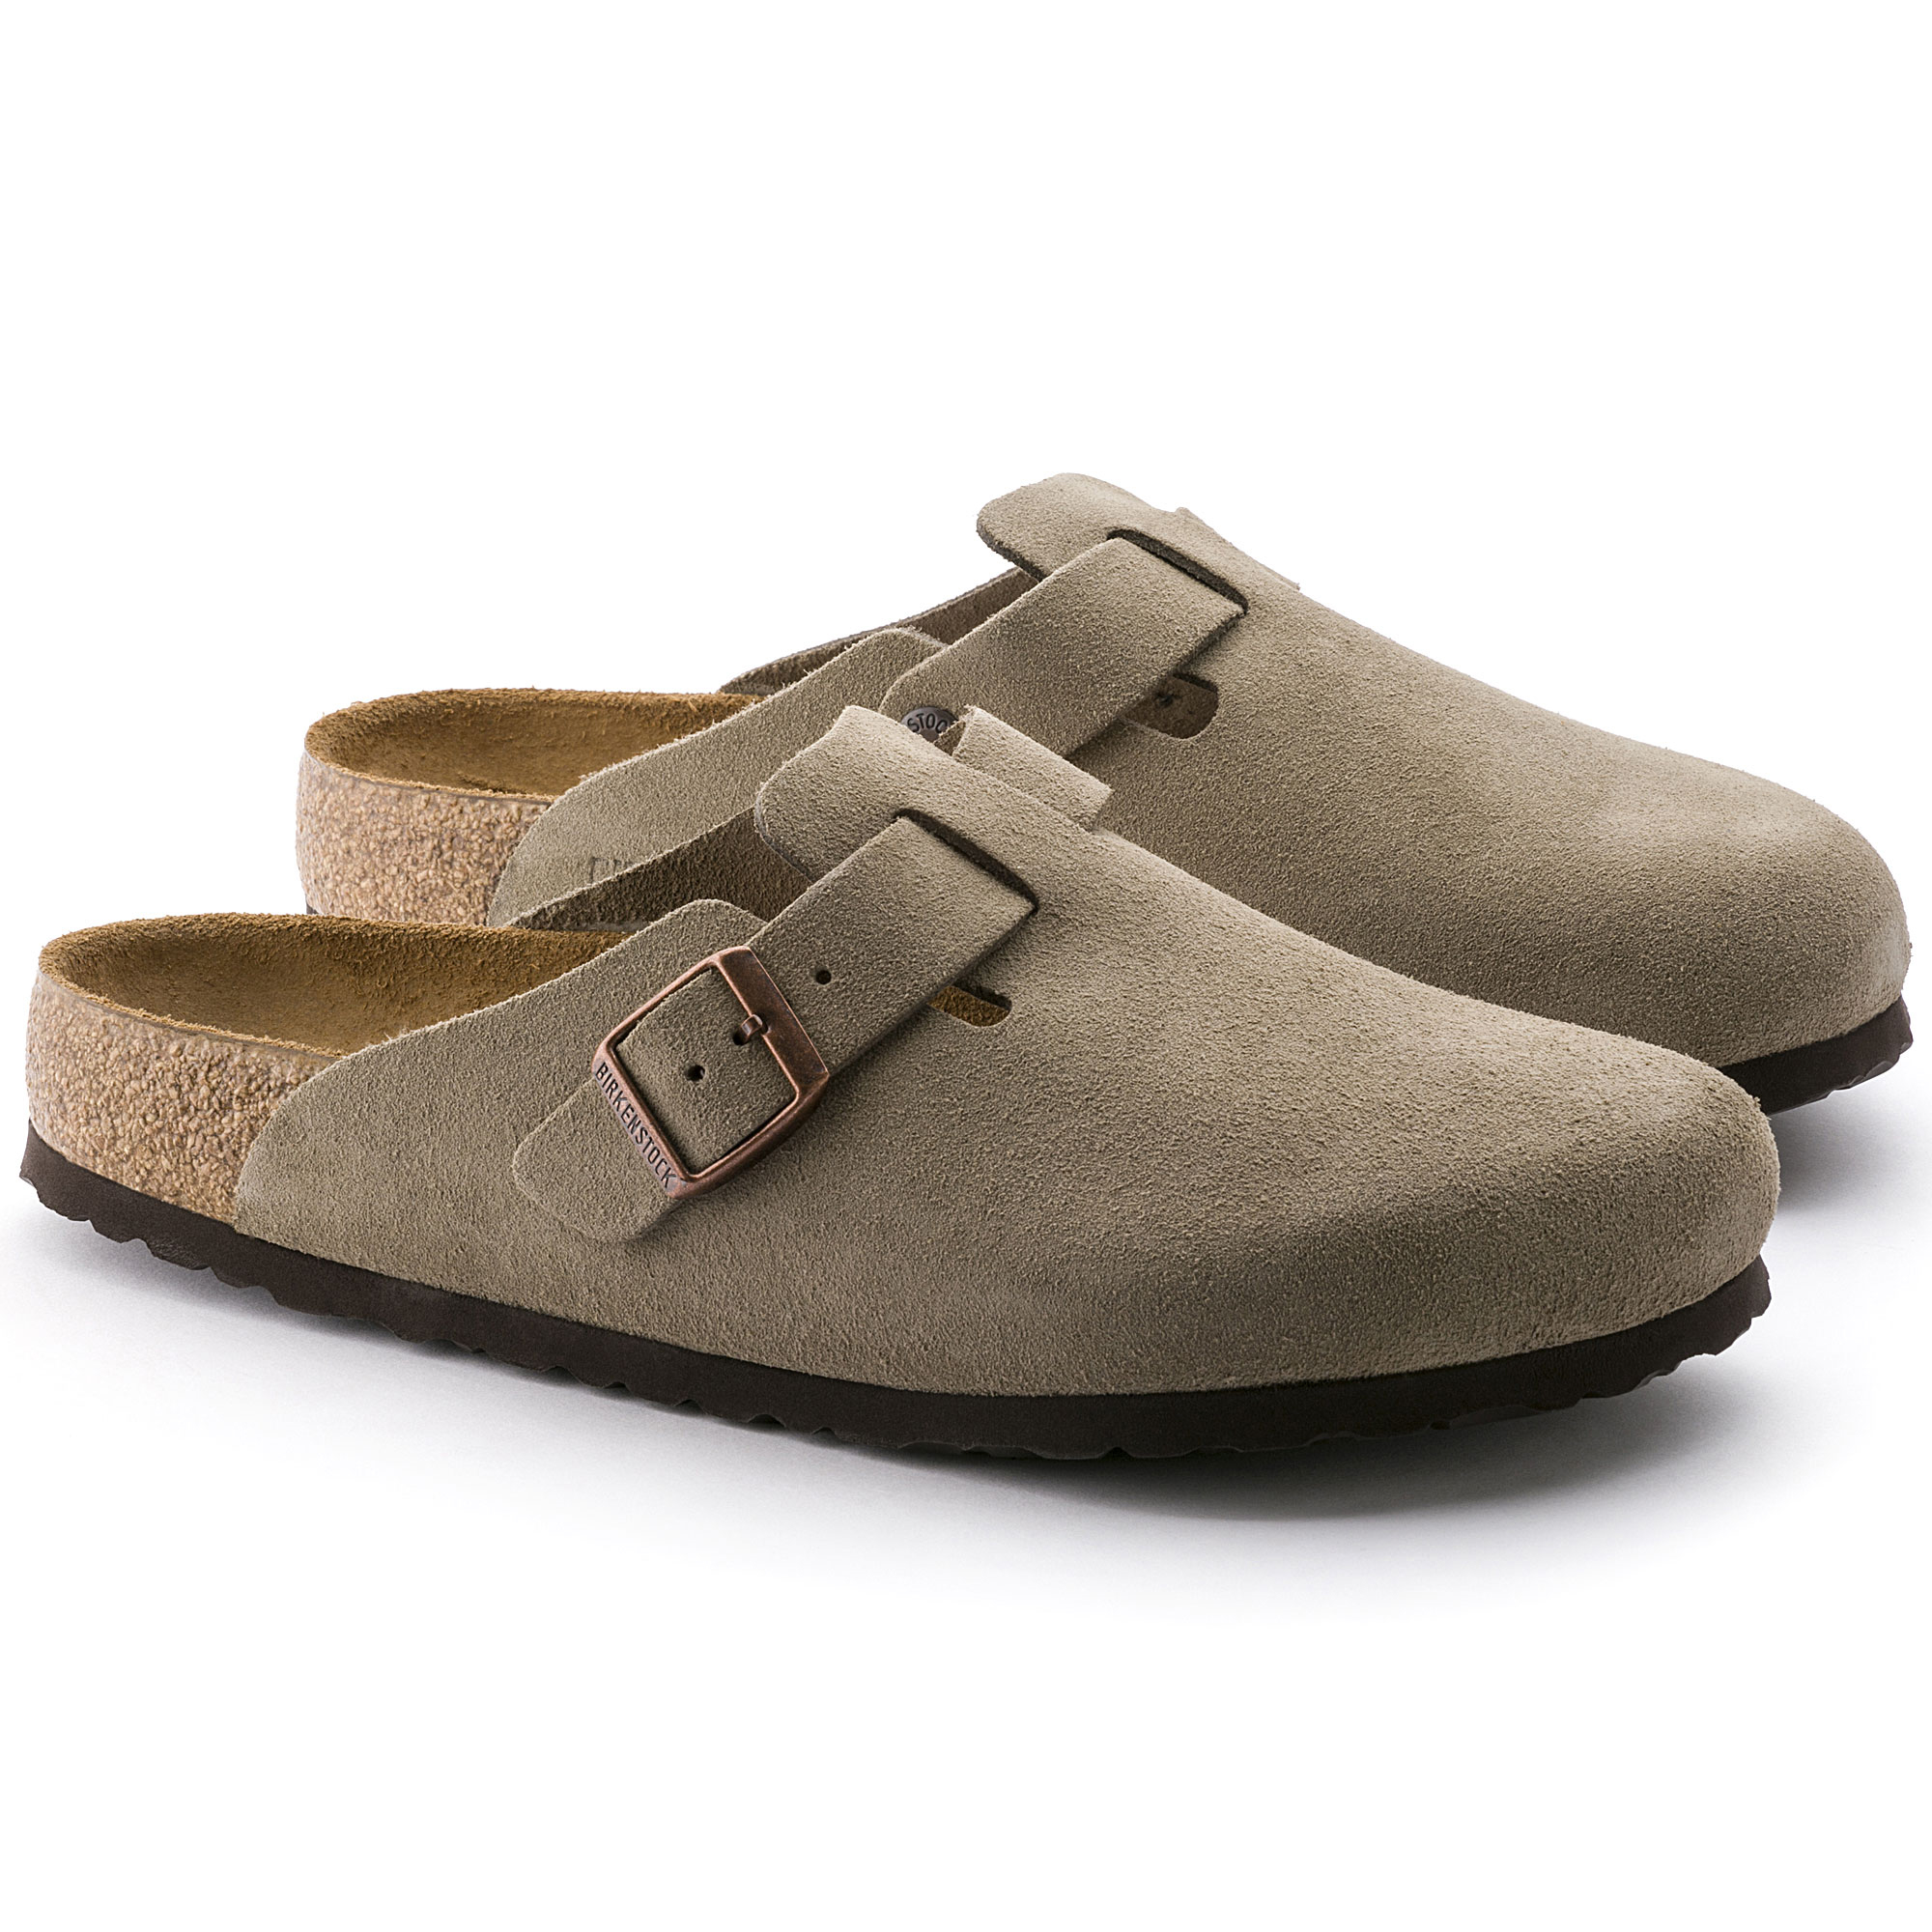 boston suede leather taupe shop online at birkenstock